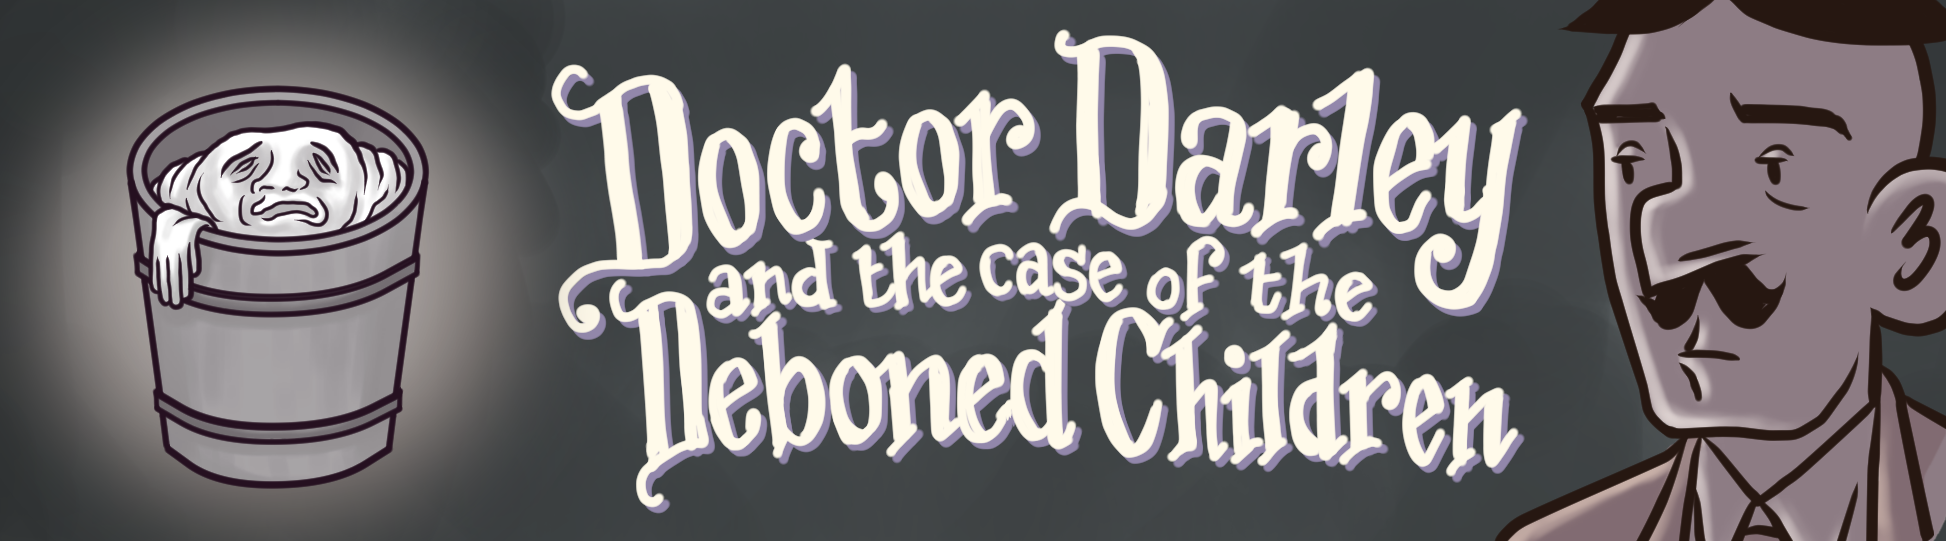 Dr. Darley and the Case of the De-boned Children